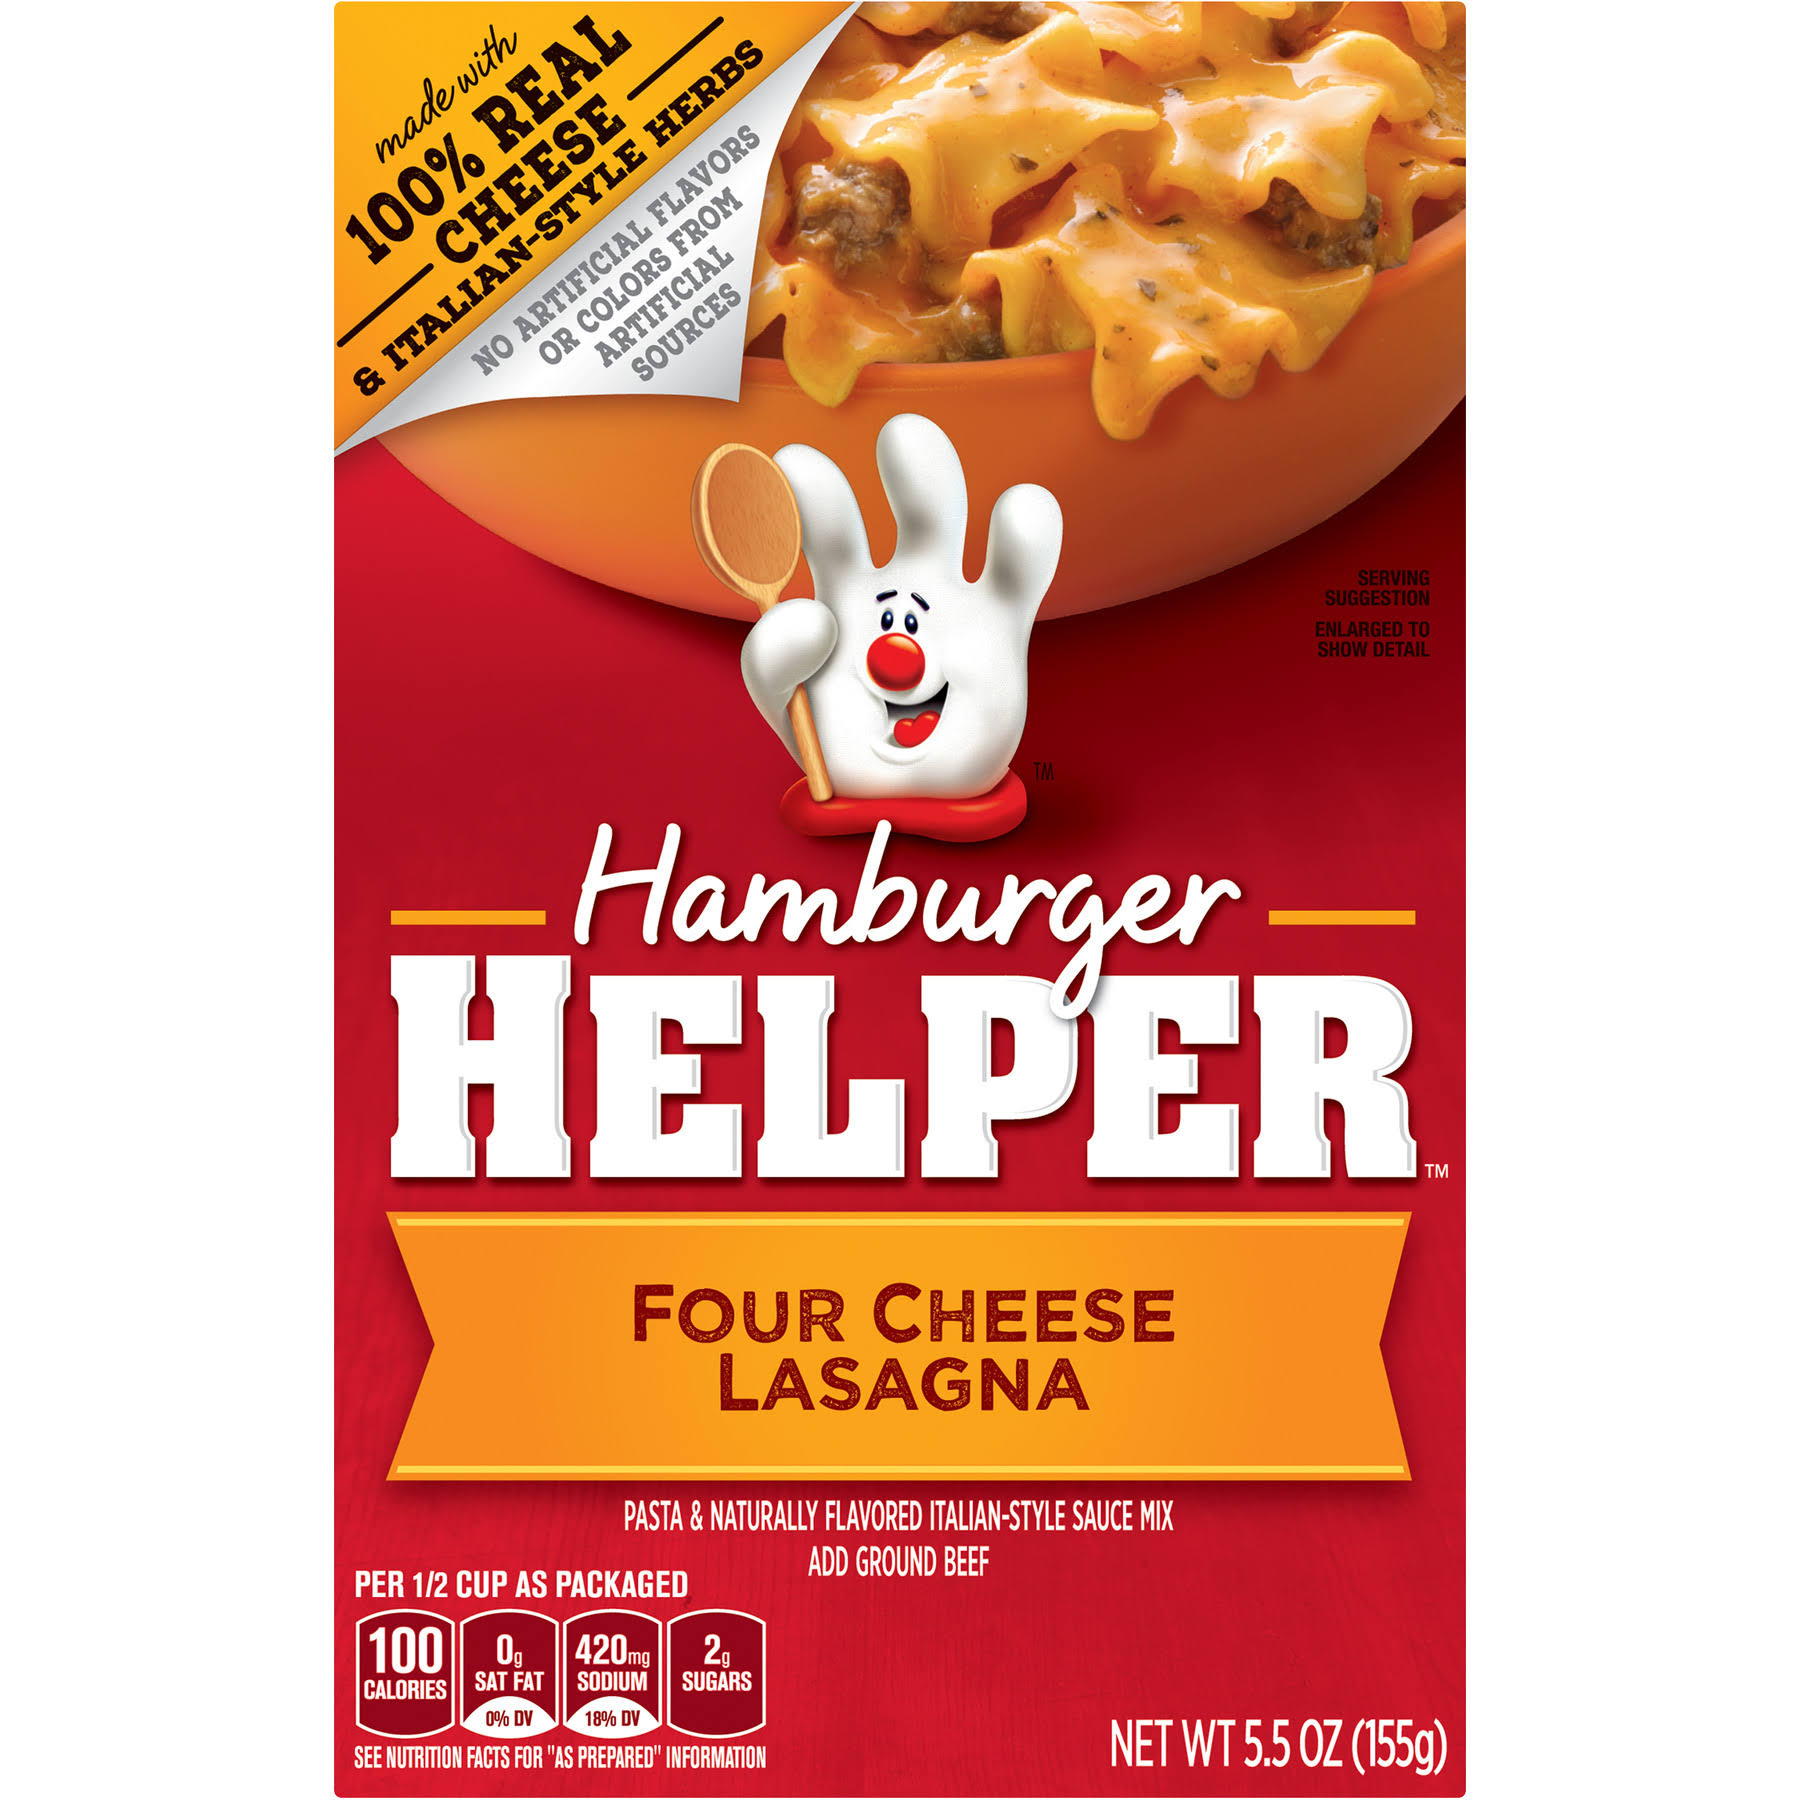 Hamburger Helper Four Cheese Lasagna Pasta and Naturally Flavored Italian-Style Sauce Mix - 5.5oz